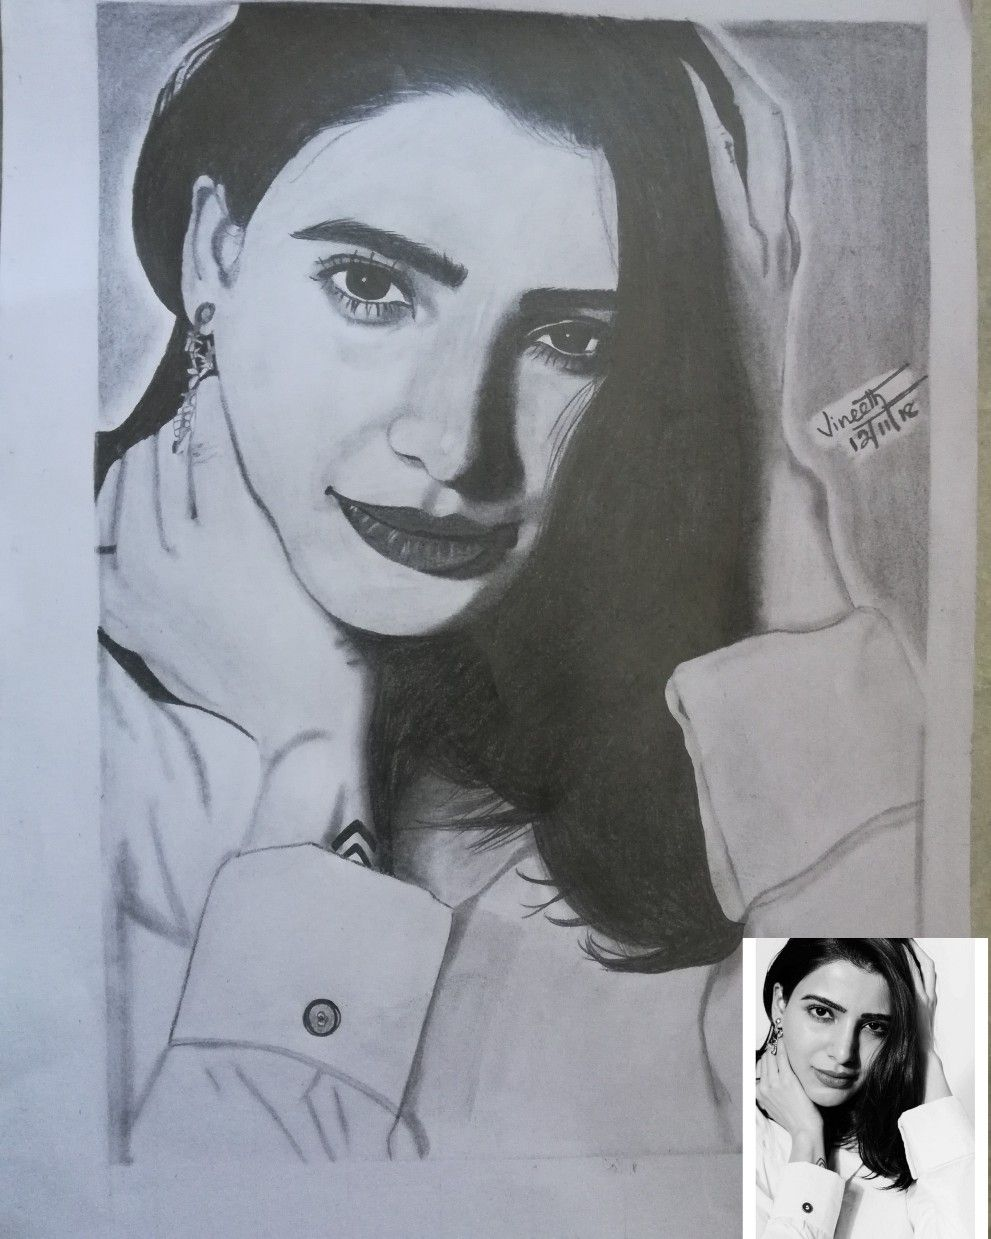 Samantha samantha pencil art pencil sketch realistic arts